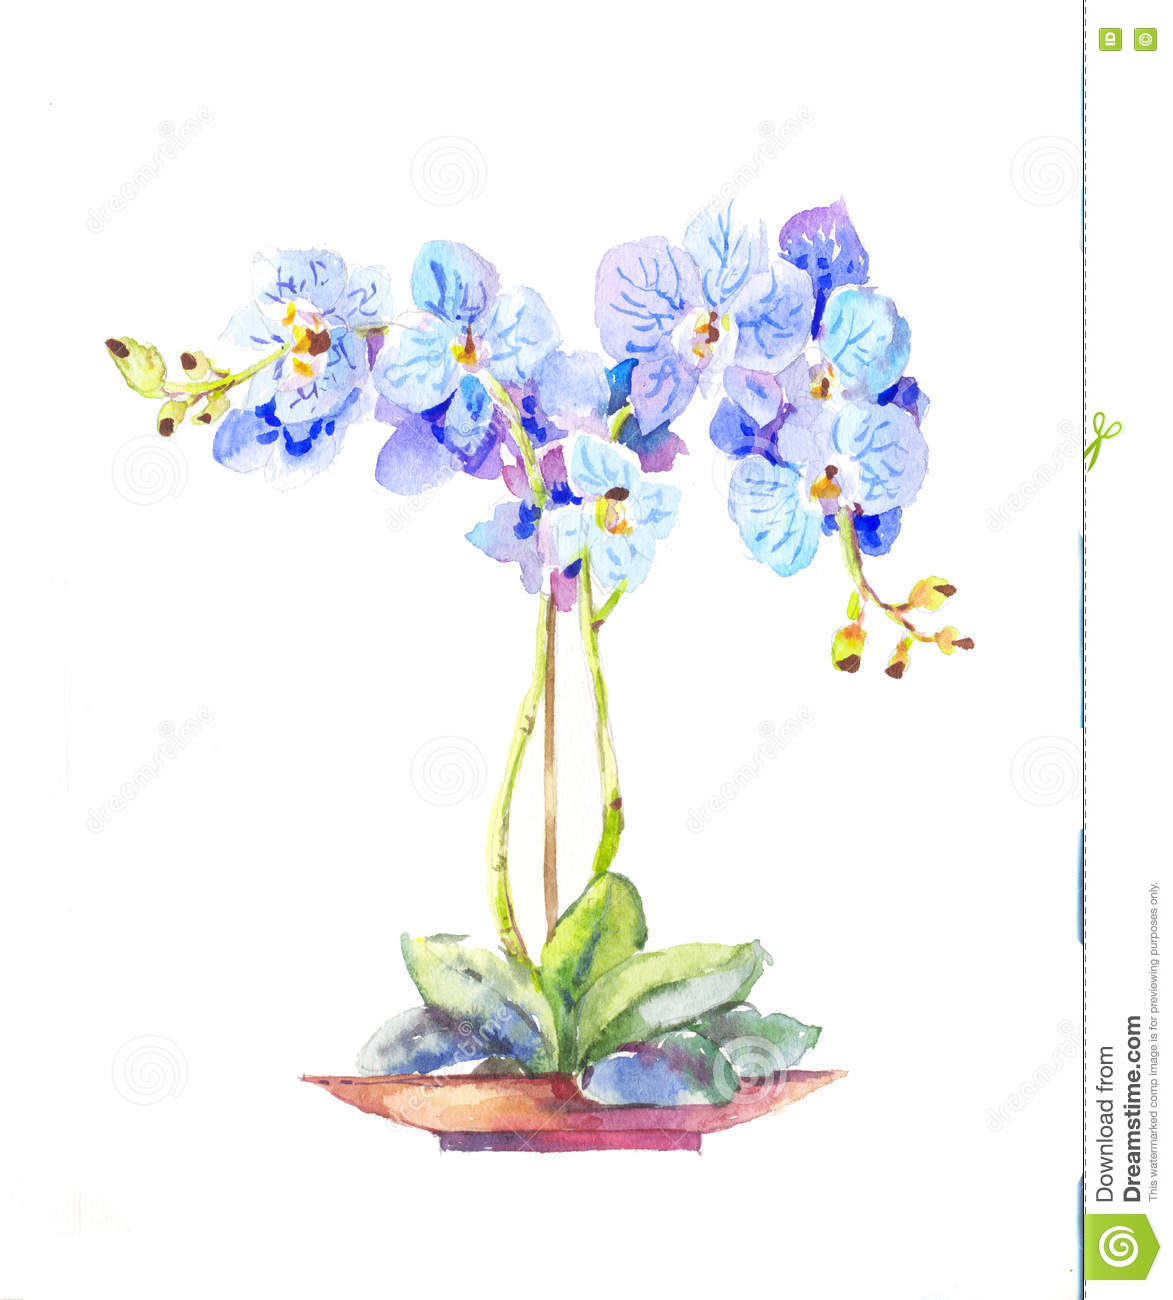 orchid e mise en pot orchid e bleue d 39 aquarelle dans un pot illustration de vecteur image. Black Bedroom Furniture Sets. Home Design Ideas